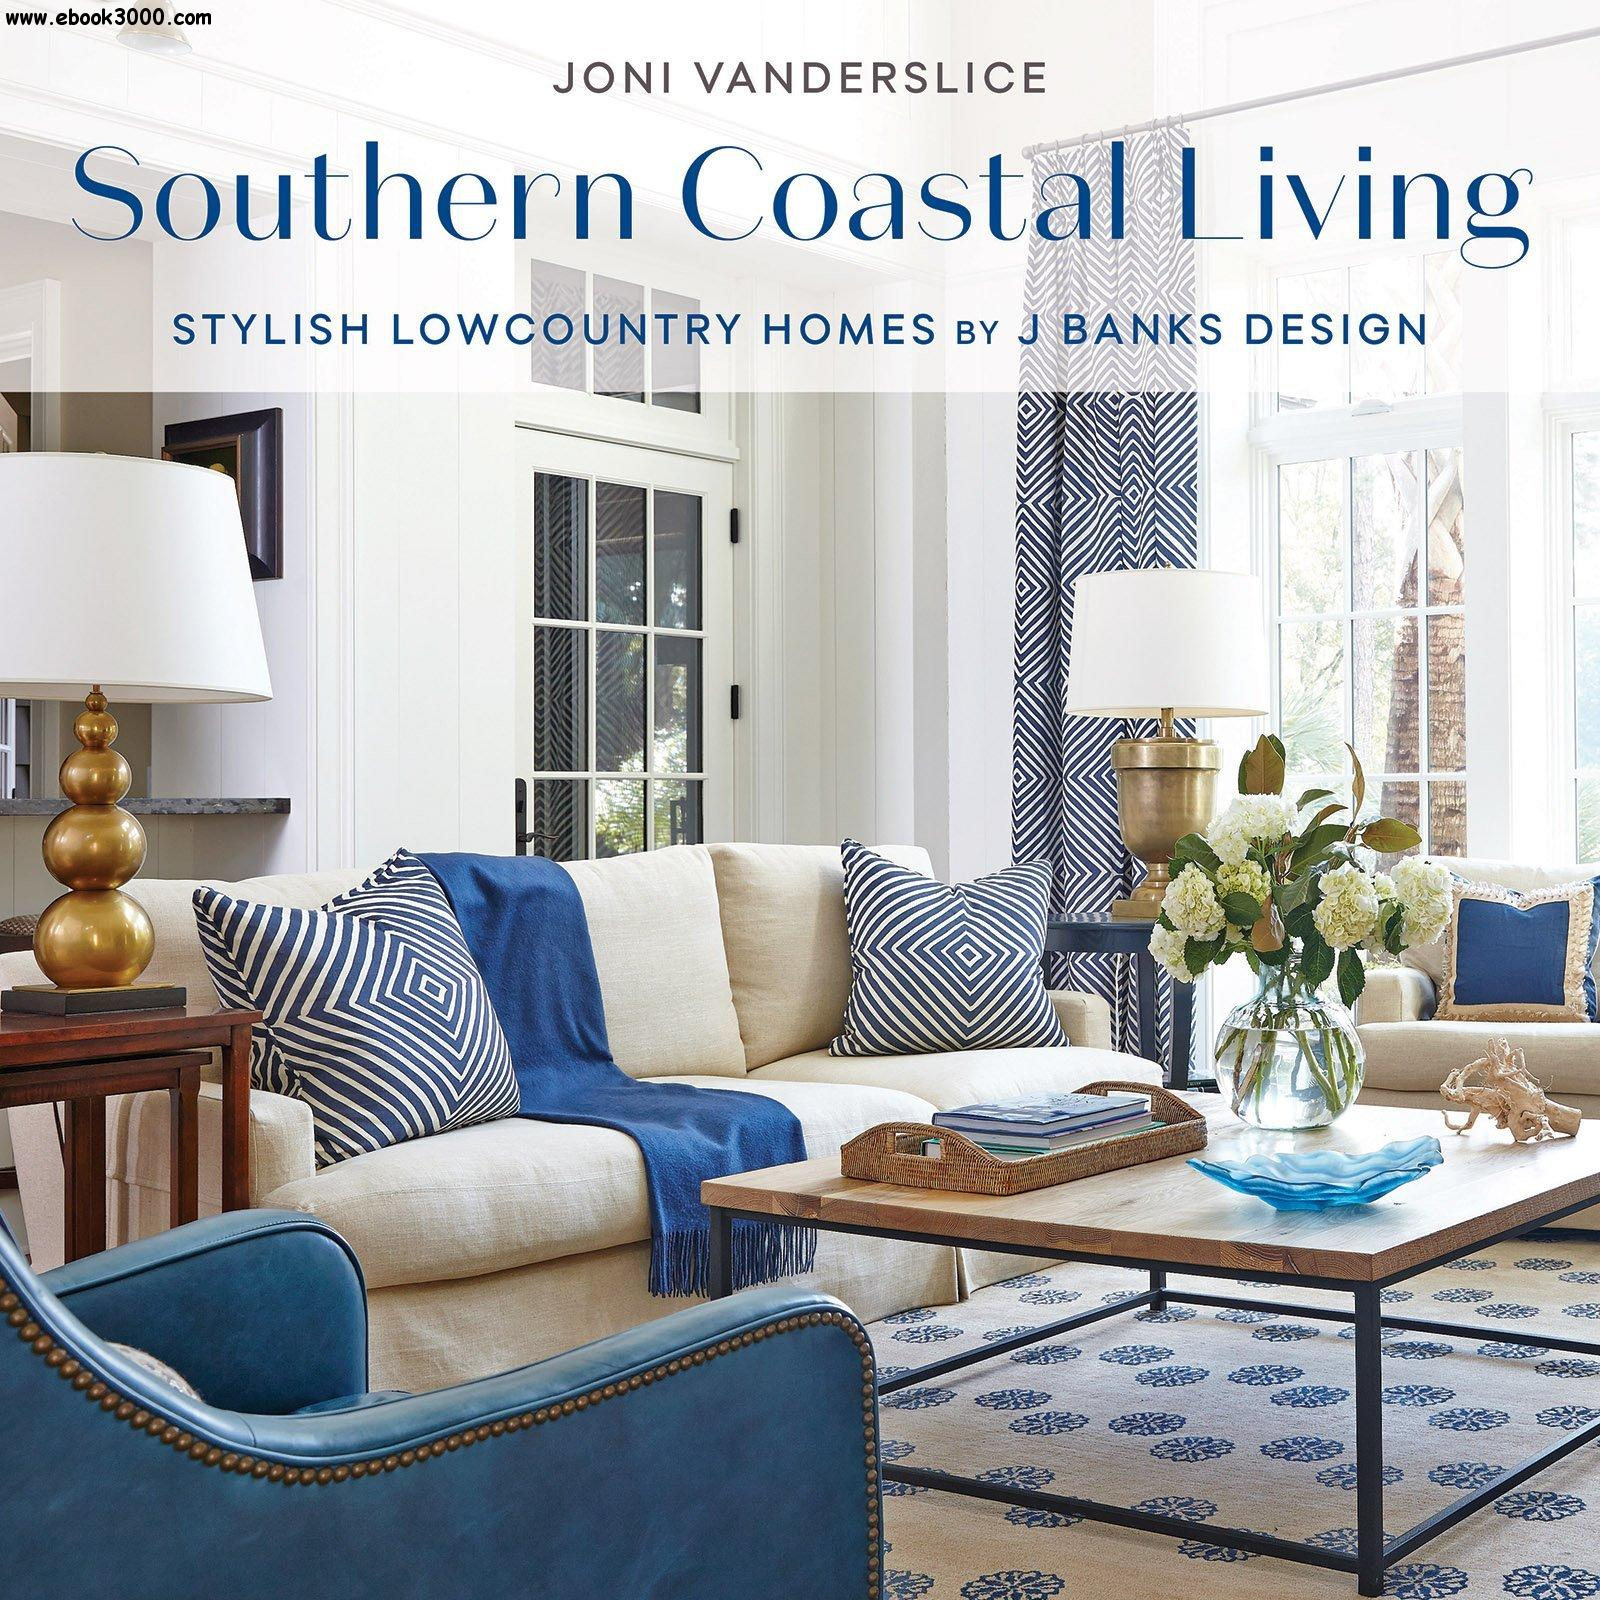 Southern Style Decorating Ideas From Southern Living: Southern Coastal Living: Stylish Lowcountry Homes By J